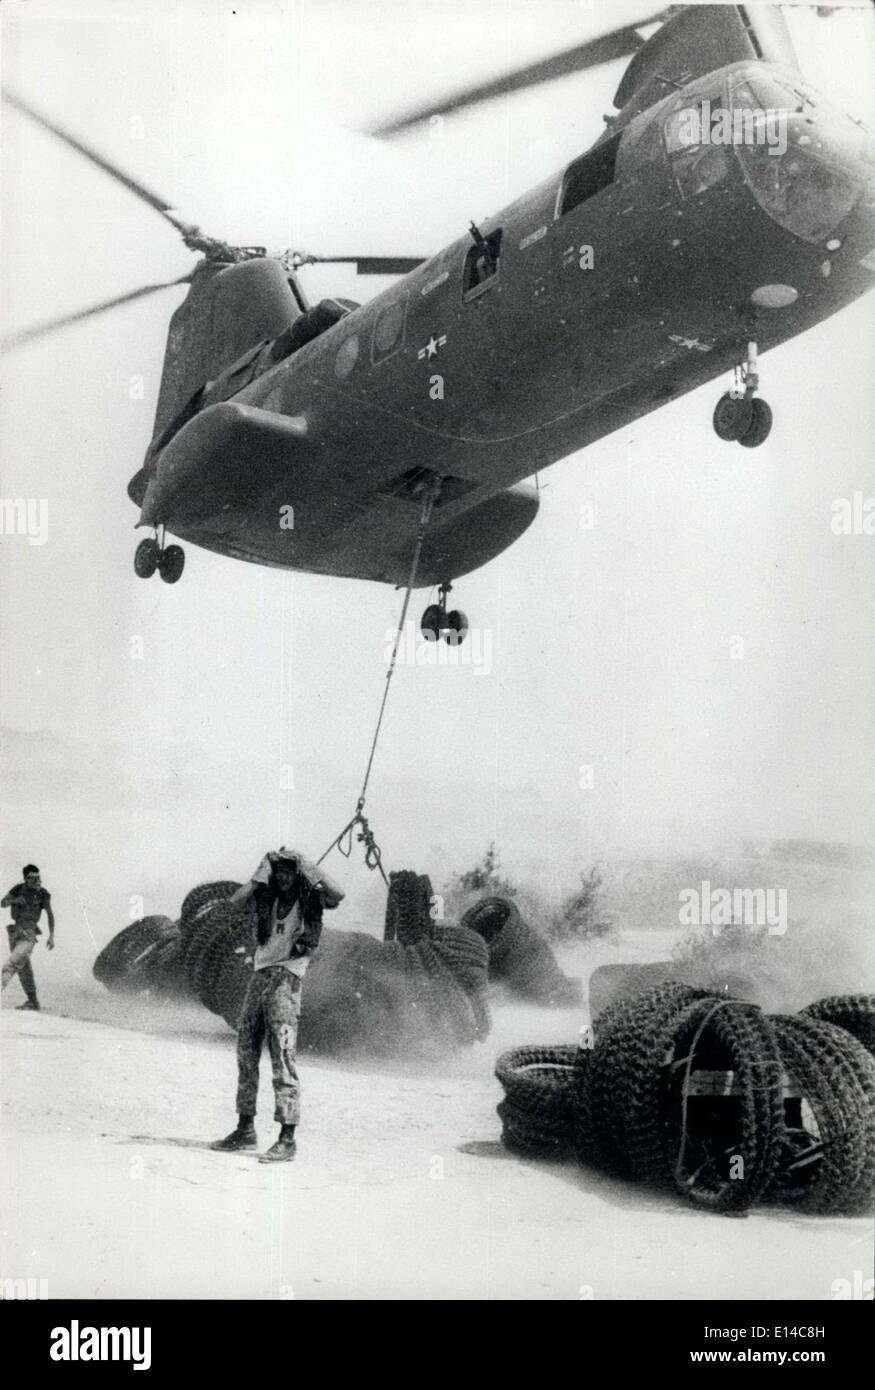 Apr. 17, 2012 - Vietnam war, barbed wire by air; A powerful Ch-46A helicopter churns up dust as it hovers to haul up coils of barbwire at Chu Lai to carry to Korean Marines who are fighting alongside US Marines at the front. - Stock Image